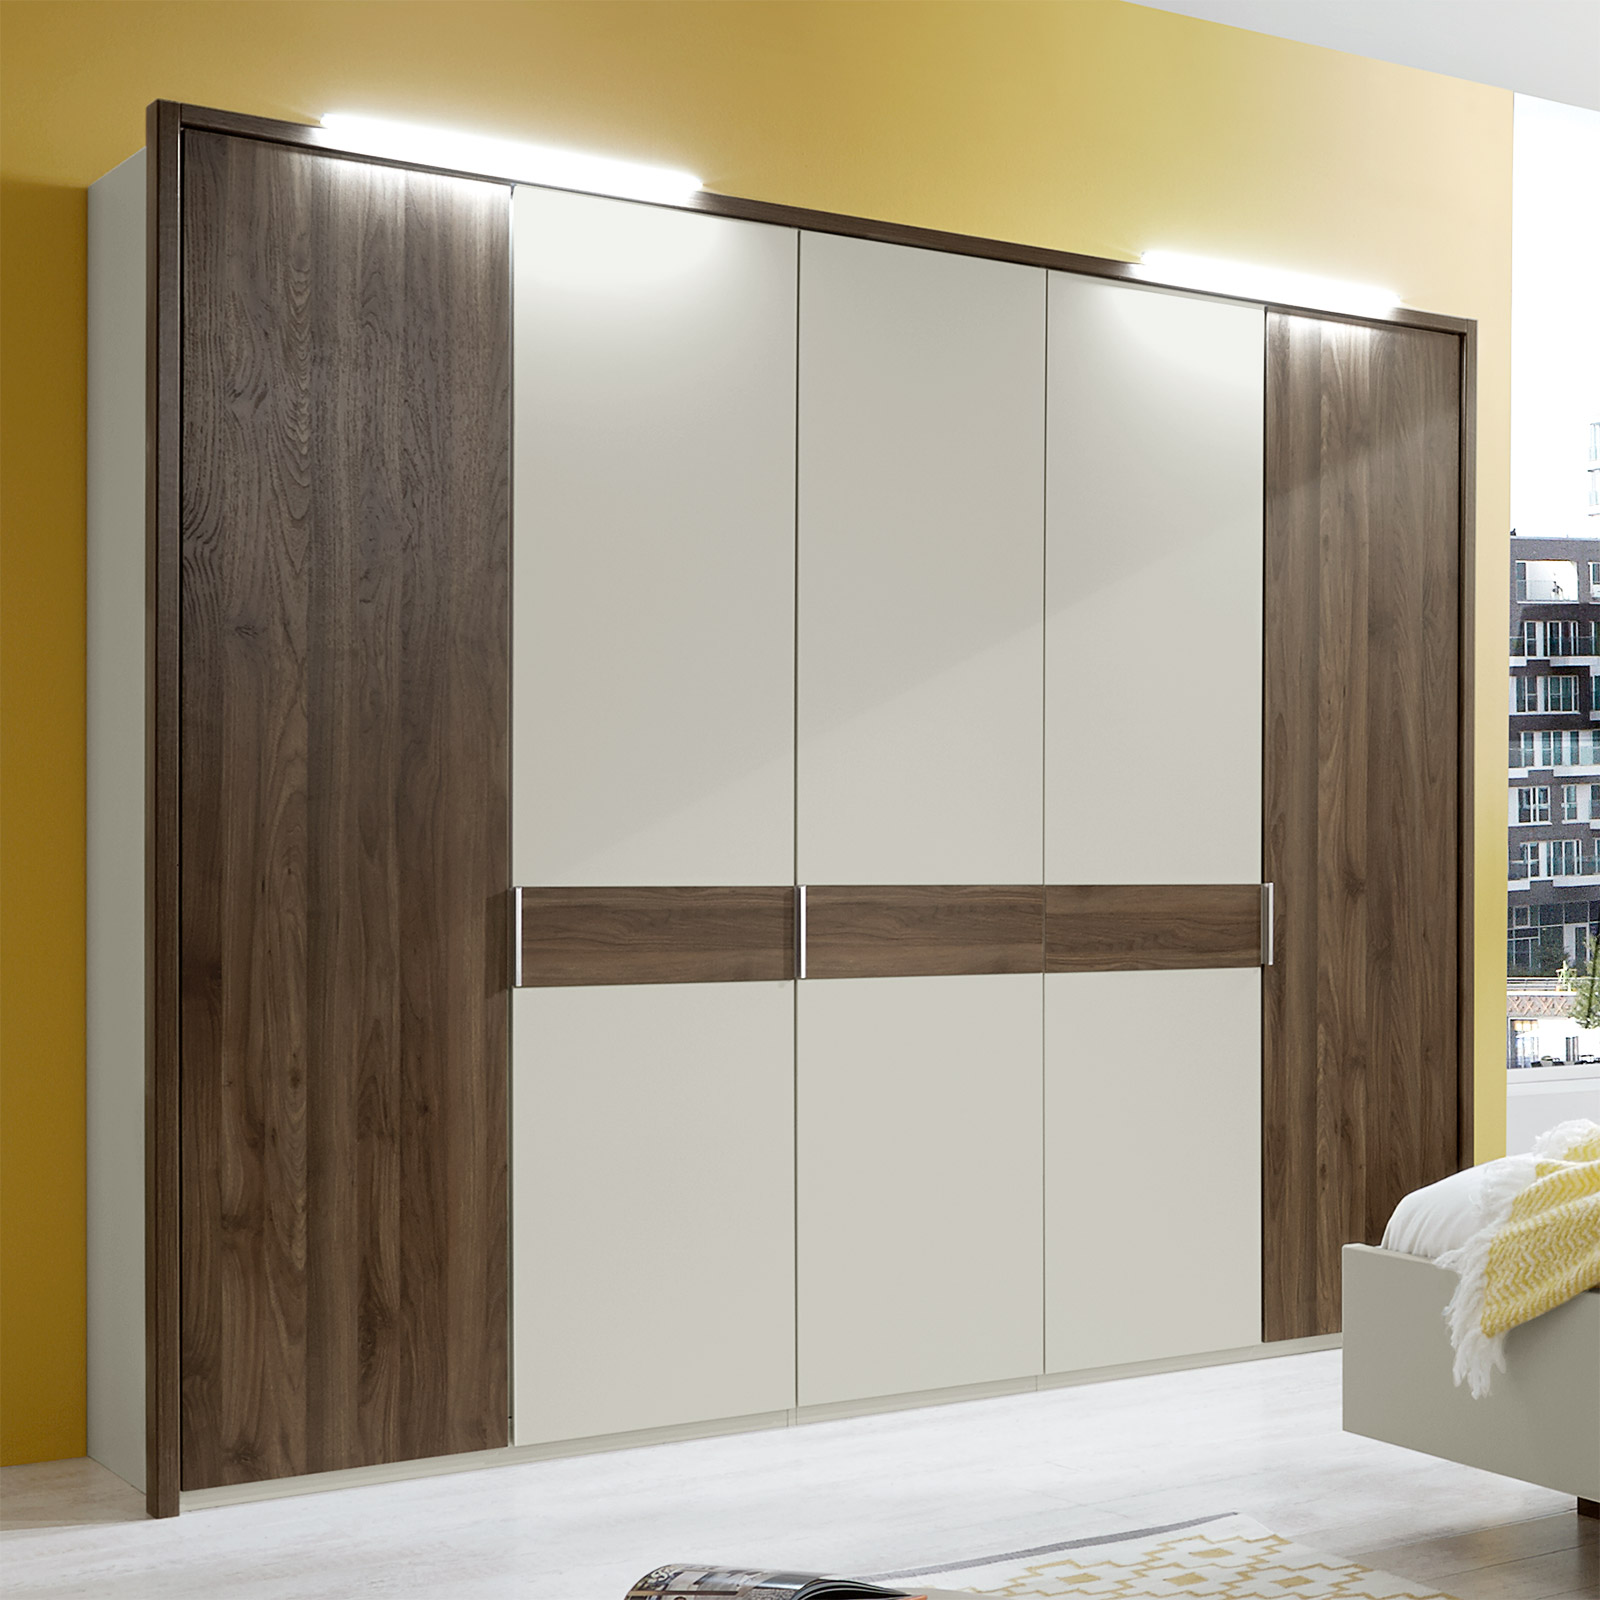 kleiderschrank mit viel stauraum ferienwohnung luxus mit panoramablick winterberg. Black Bedroom Furniture Sets. Home Design Ideas